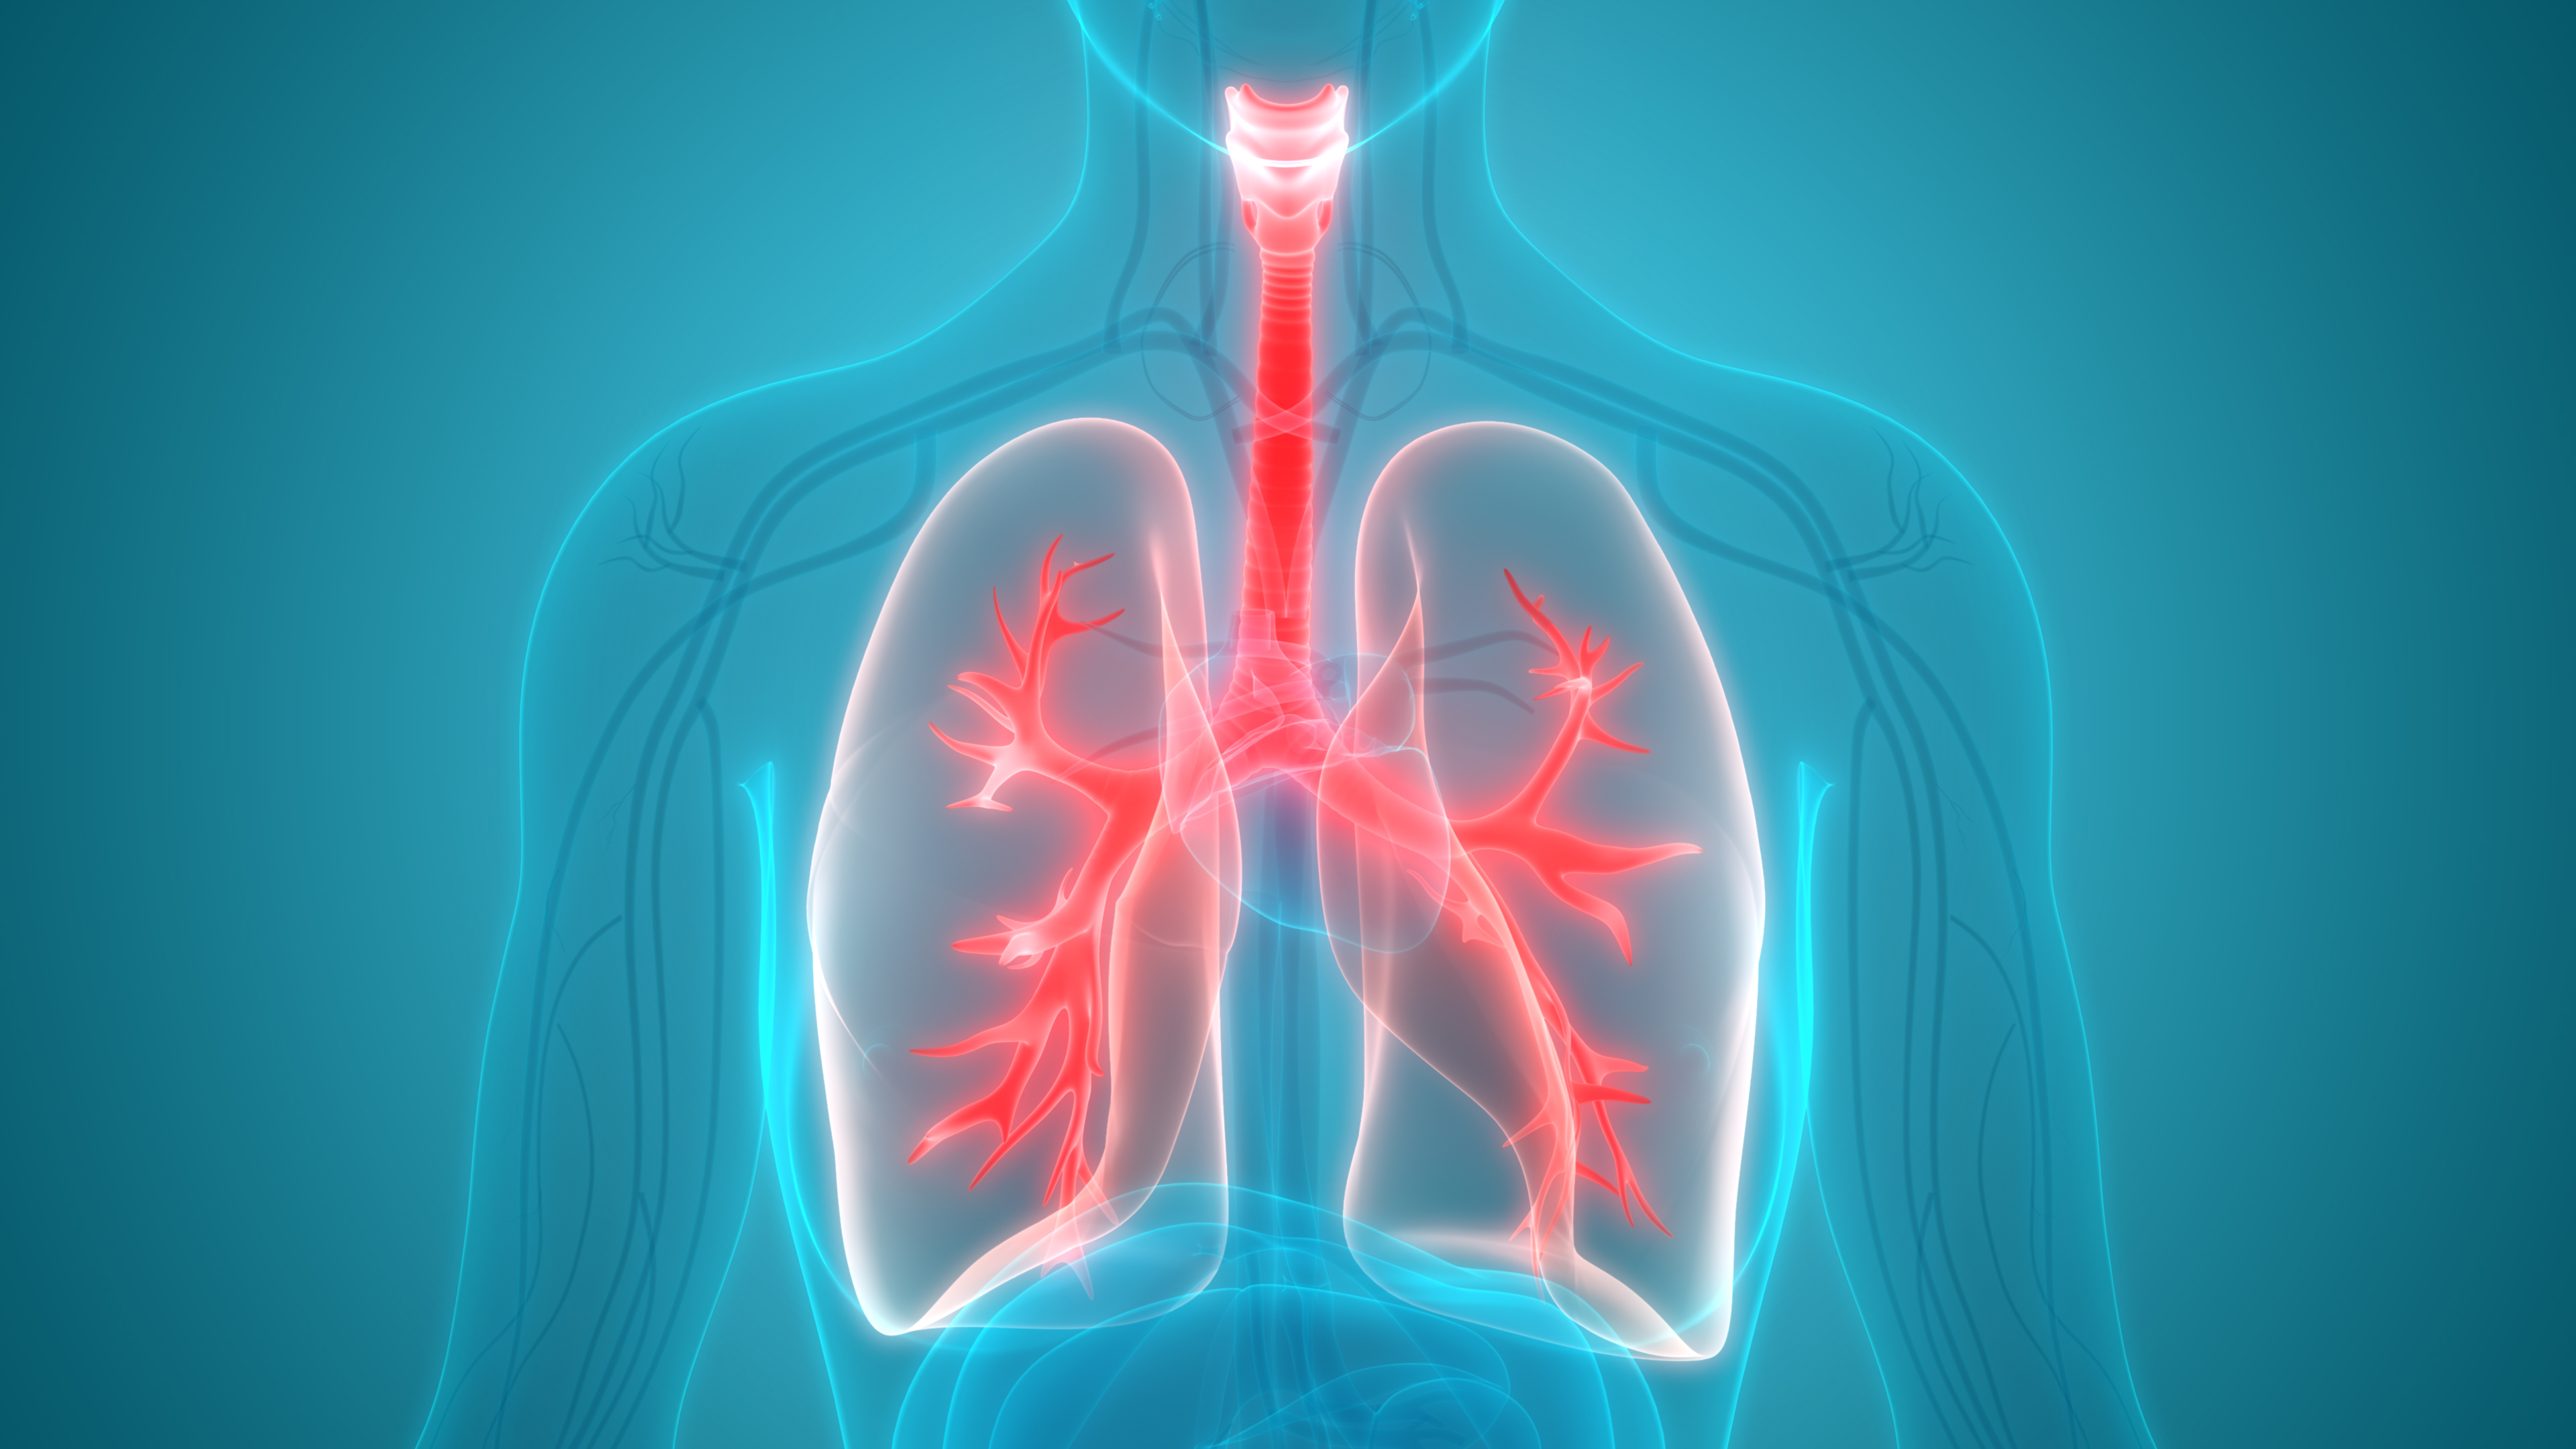 Pulmonary Medicine | Providing Care For Lung Disease